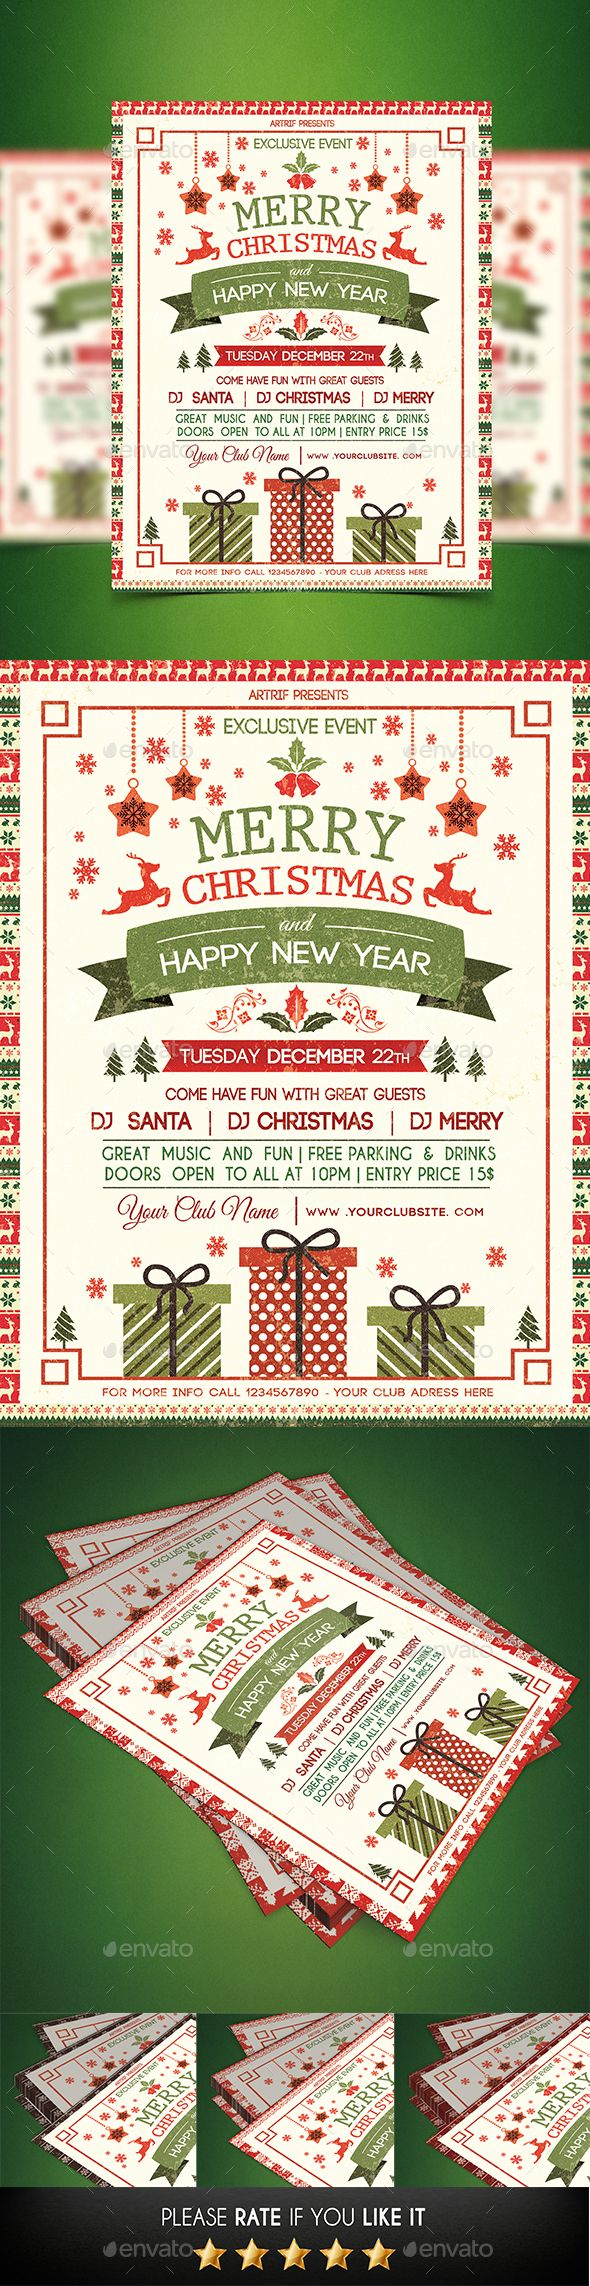 Free online poster design and download - Christmas Party Flyer